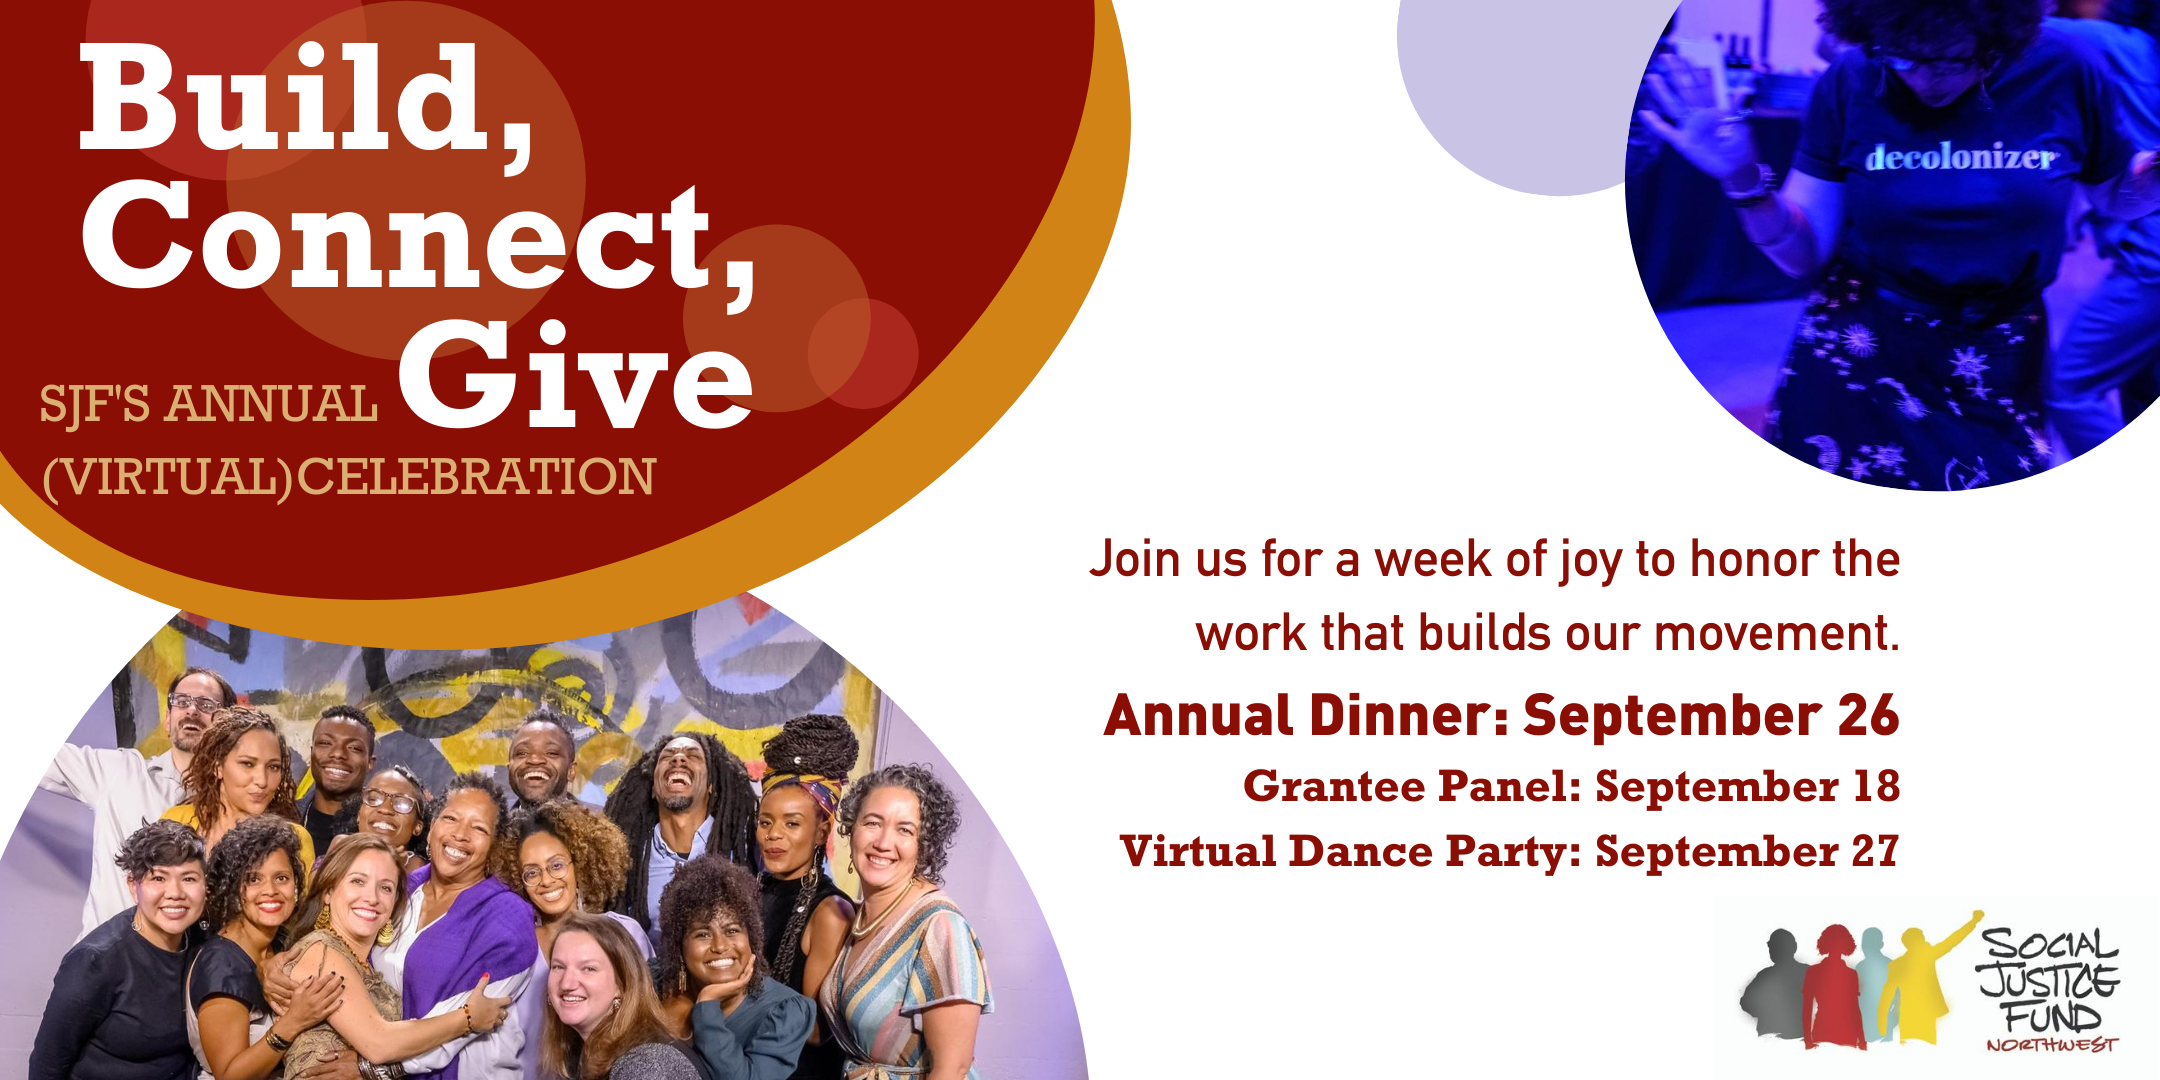 """Banner image, white background. Upper left corner features red oval with white text that reads, """"Build, Connect, Give. SJF's annual (virtual) celebration. To the right is another oval featuring a Black woman on a dancefloor with blue lighting. To the right is another oval, featuring a picture of SJF staff smiling at the camera. Red text in the middle of the banner reads, """"Join us for a week of joy to honor the work that builds our movement. Annual dinner: September 26. Grantee Panel: September 18. Virtual Dance Party: September 27."""